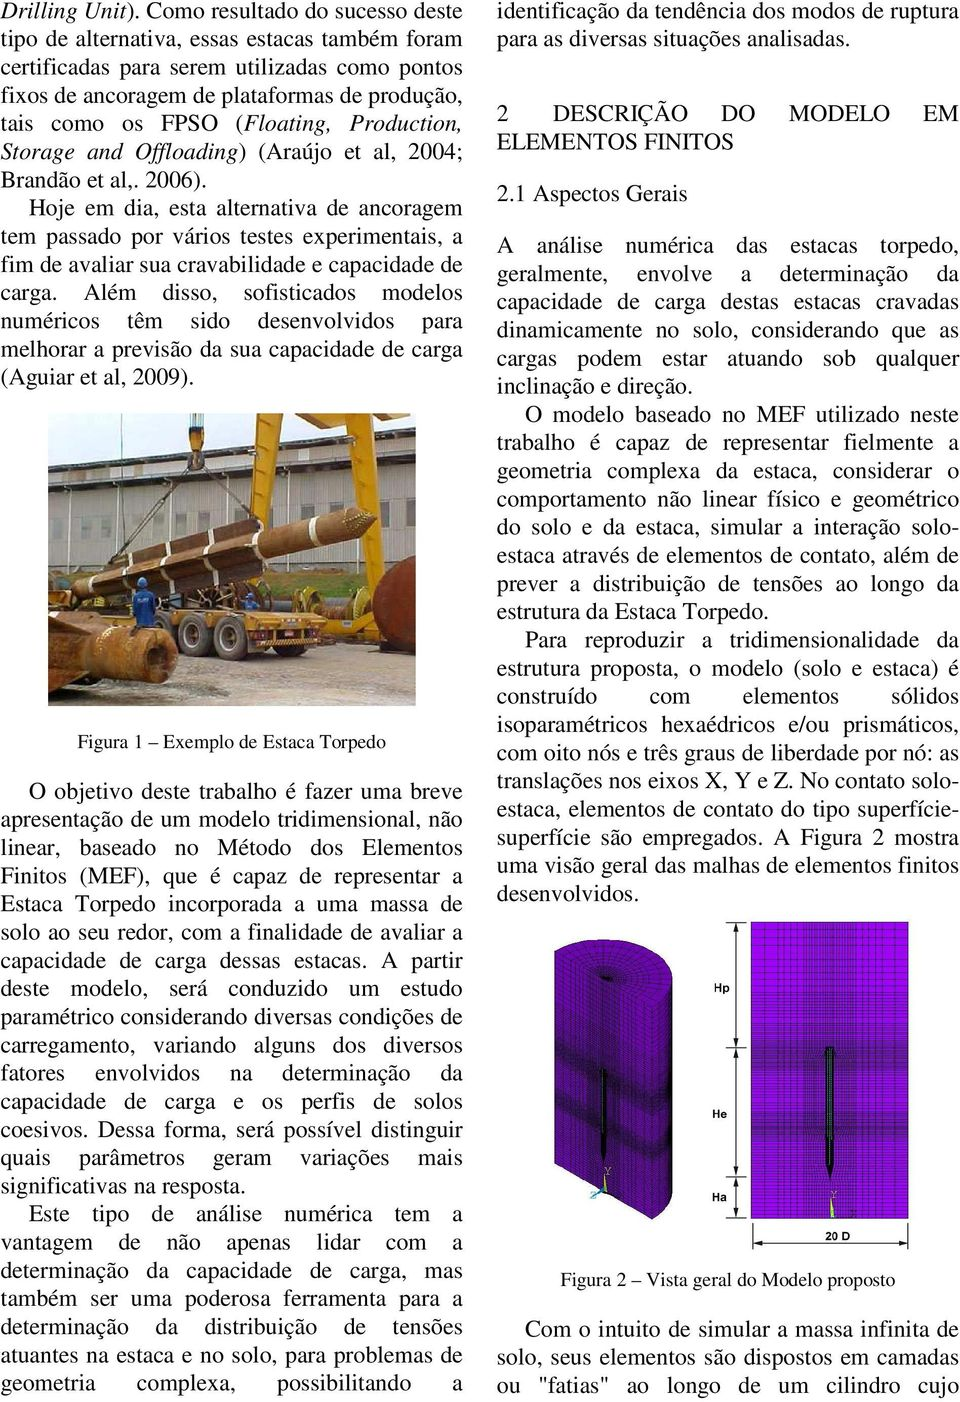 (Floating, Production, Storage and Offloading) (Araújo et al, 24; Brandão et al,. 26).